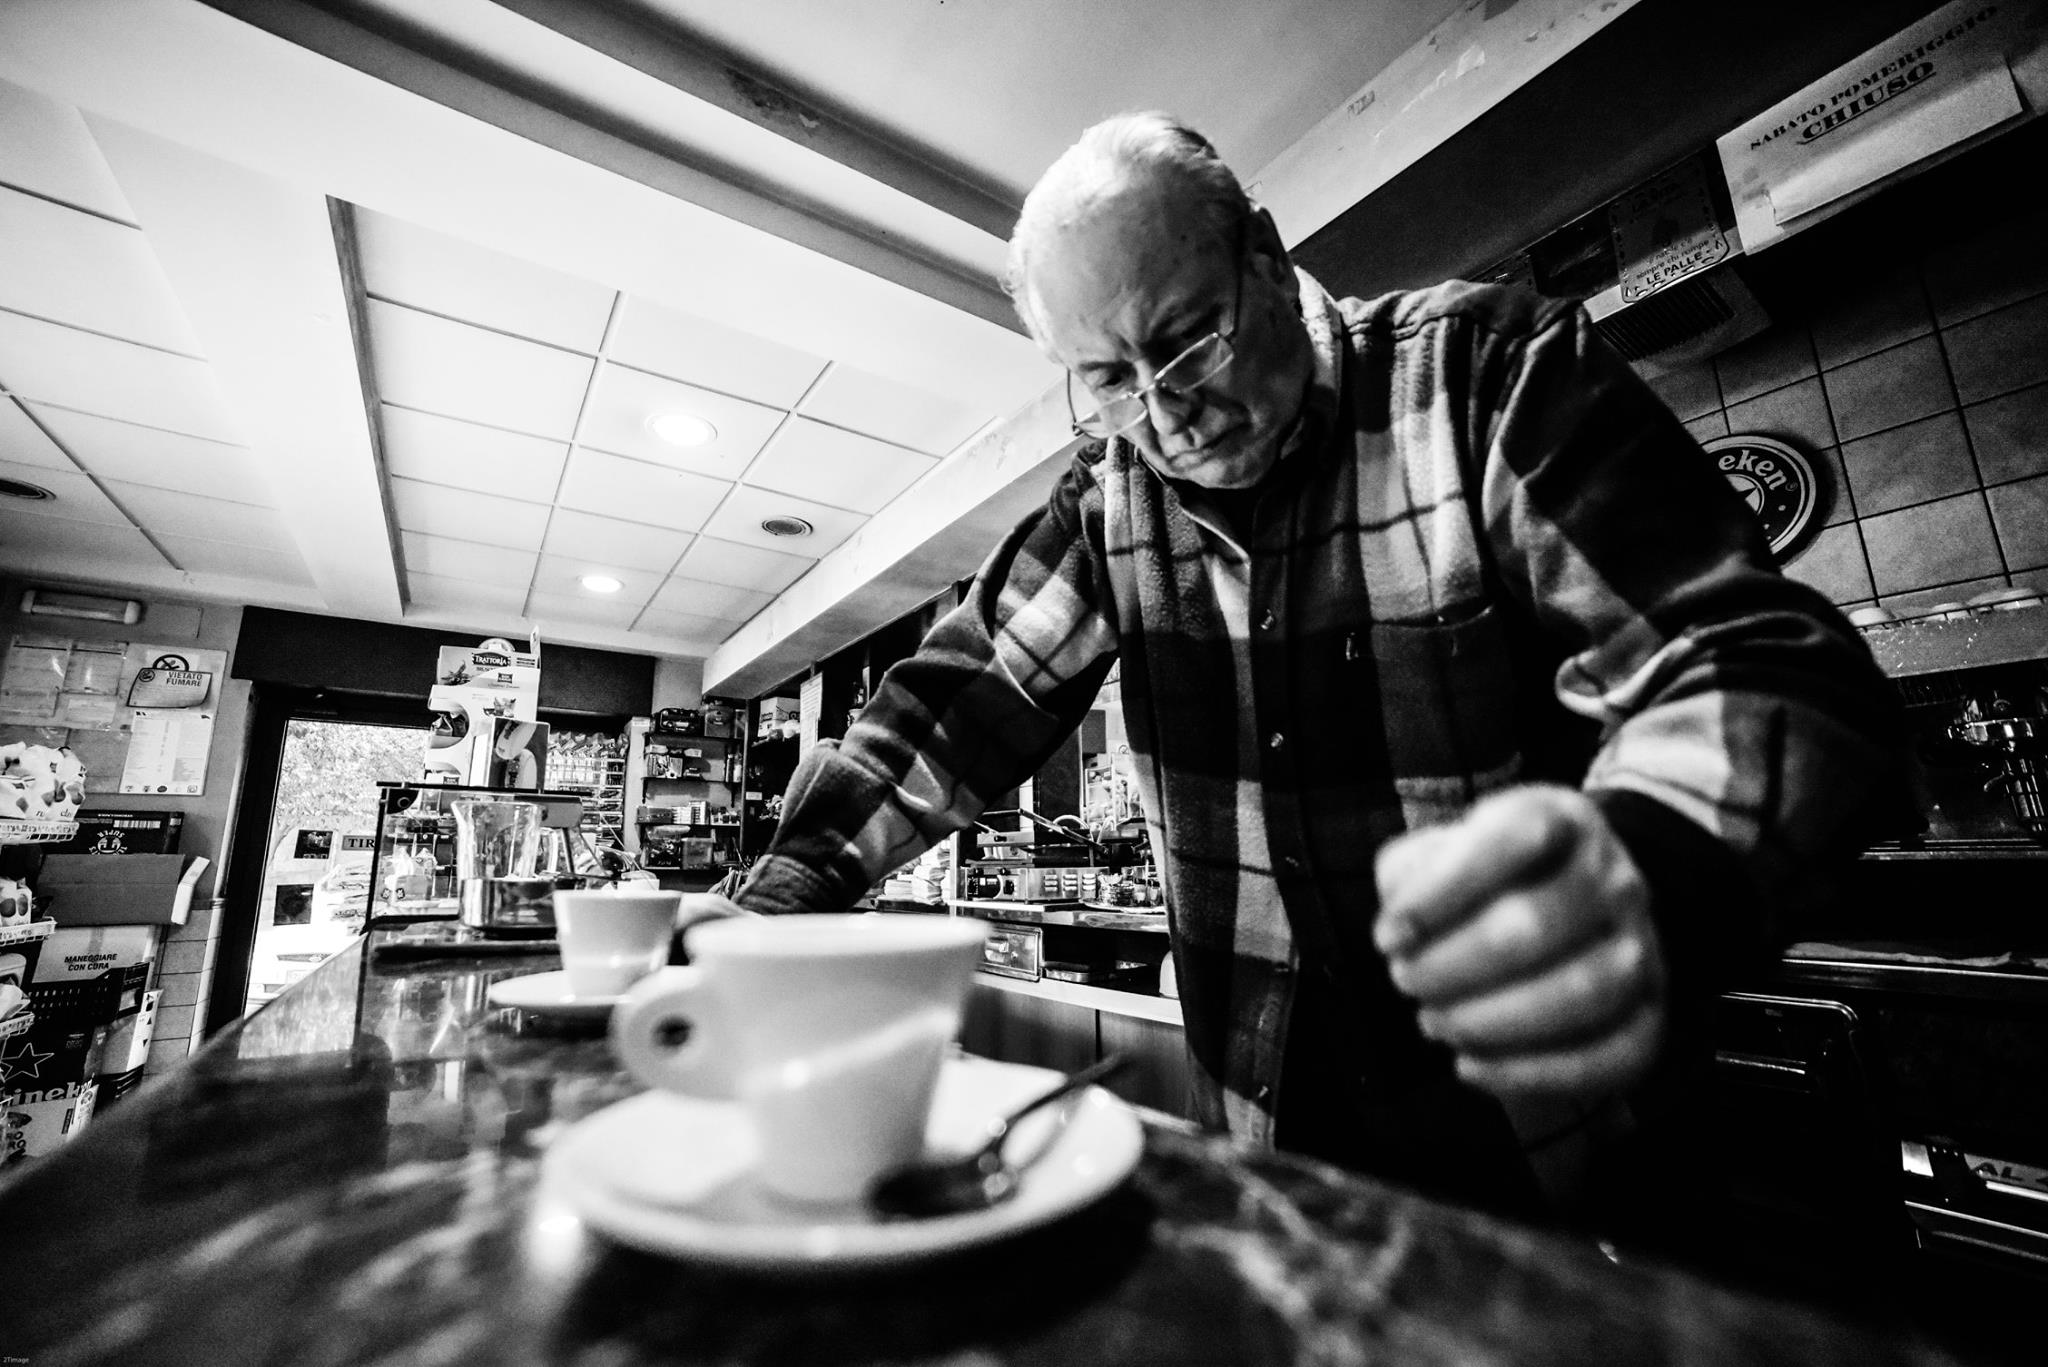 Al bar - Roma Street Photography - Pic by Francesco Torrice